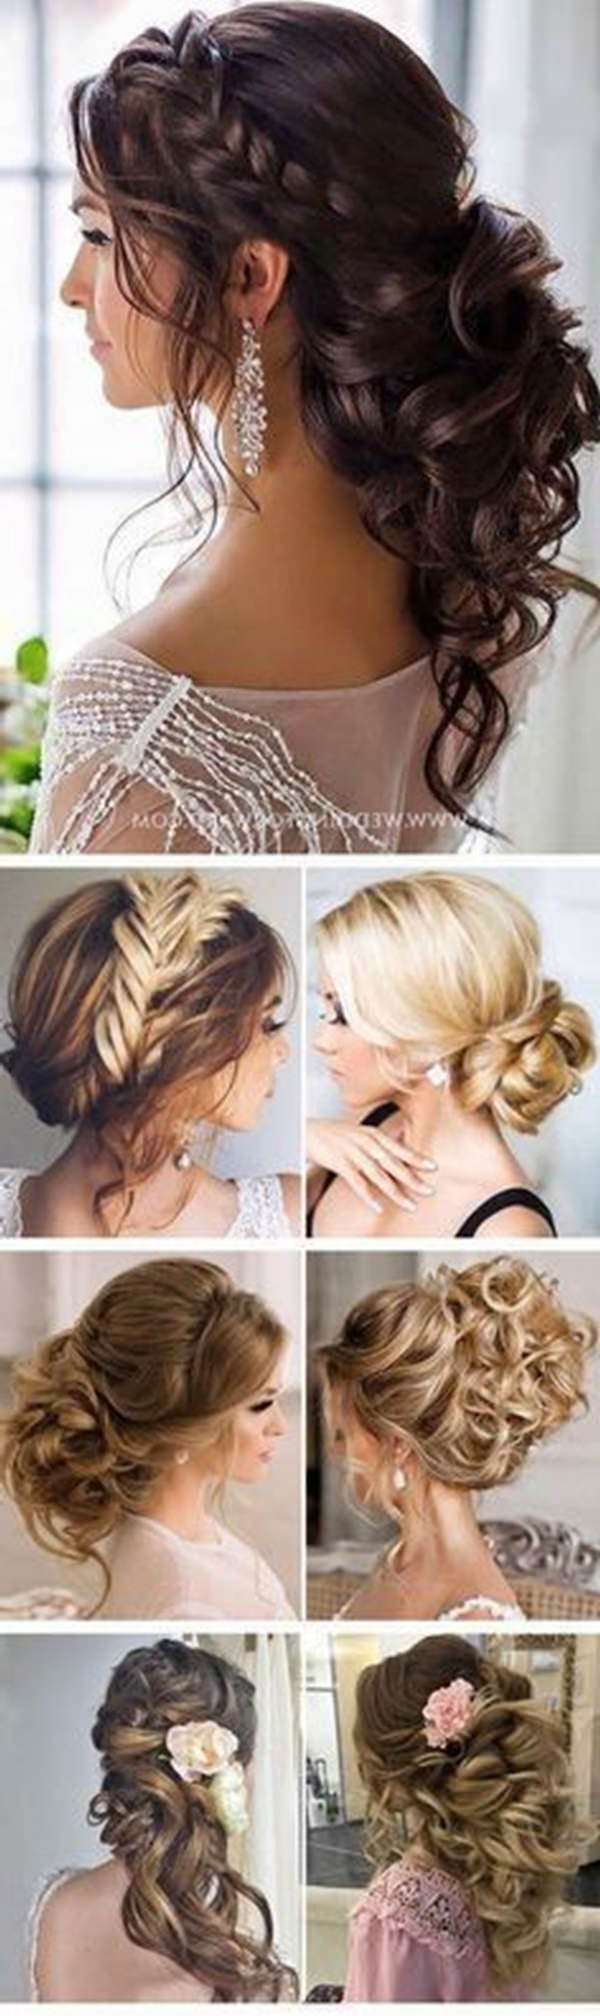 154 Updos For Long Hair Featuring Beautiful Braids And Buns For Well Known Braided Chignon Prom Hairstyles (View 2 of 20)